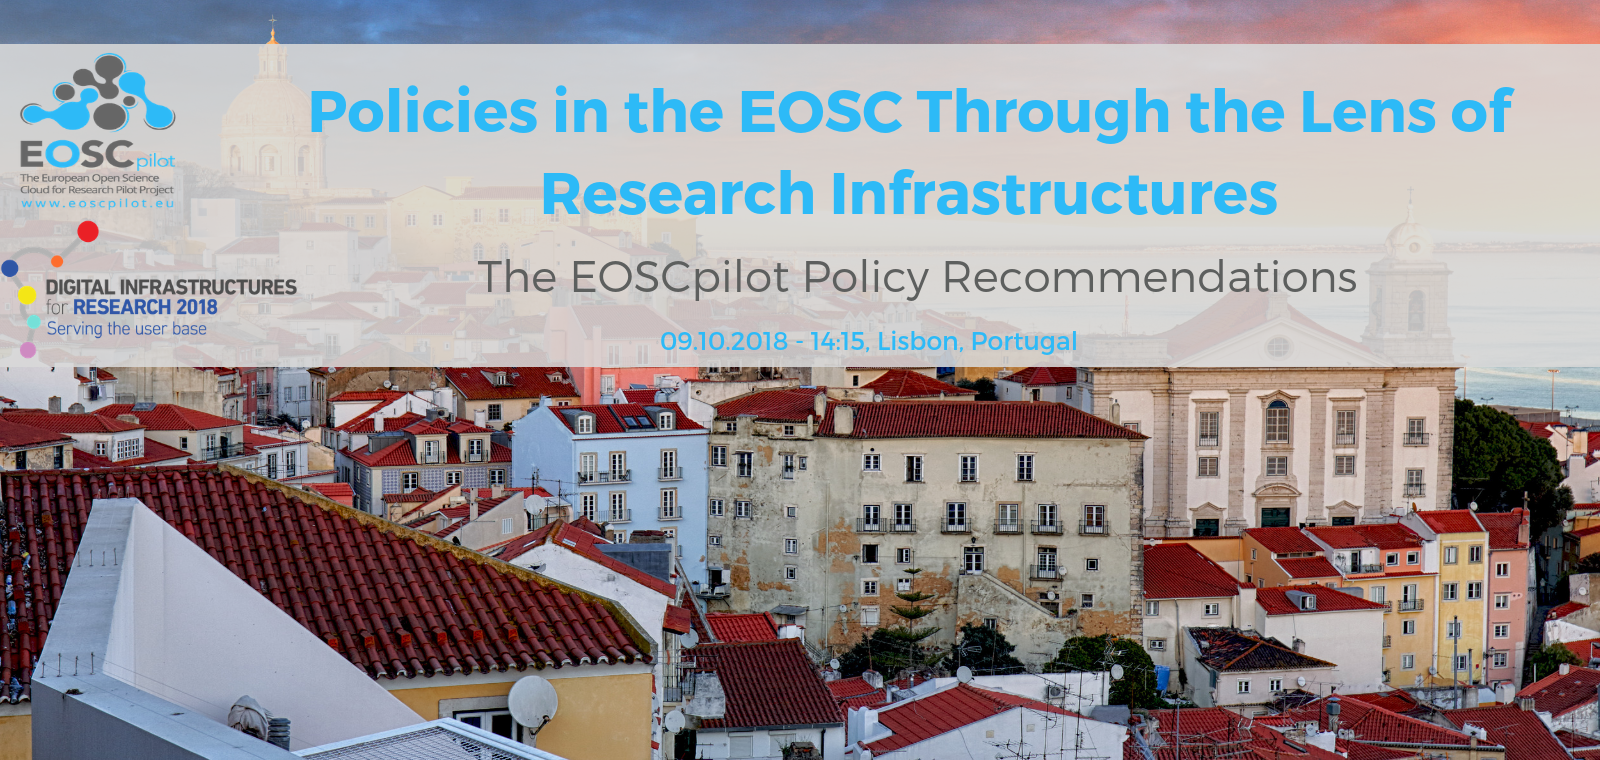 Policies in the EOSC Through the Lens of Research Infrastructures: The EOSCpilot Policy Recommendations